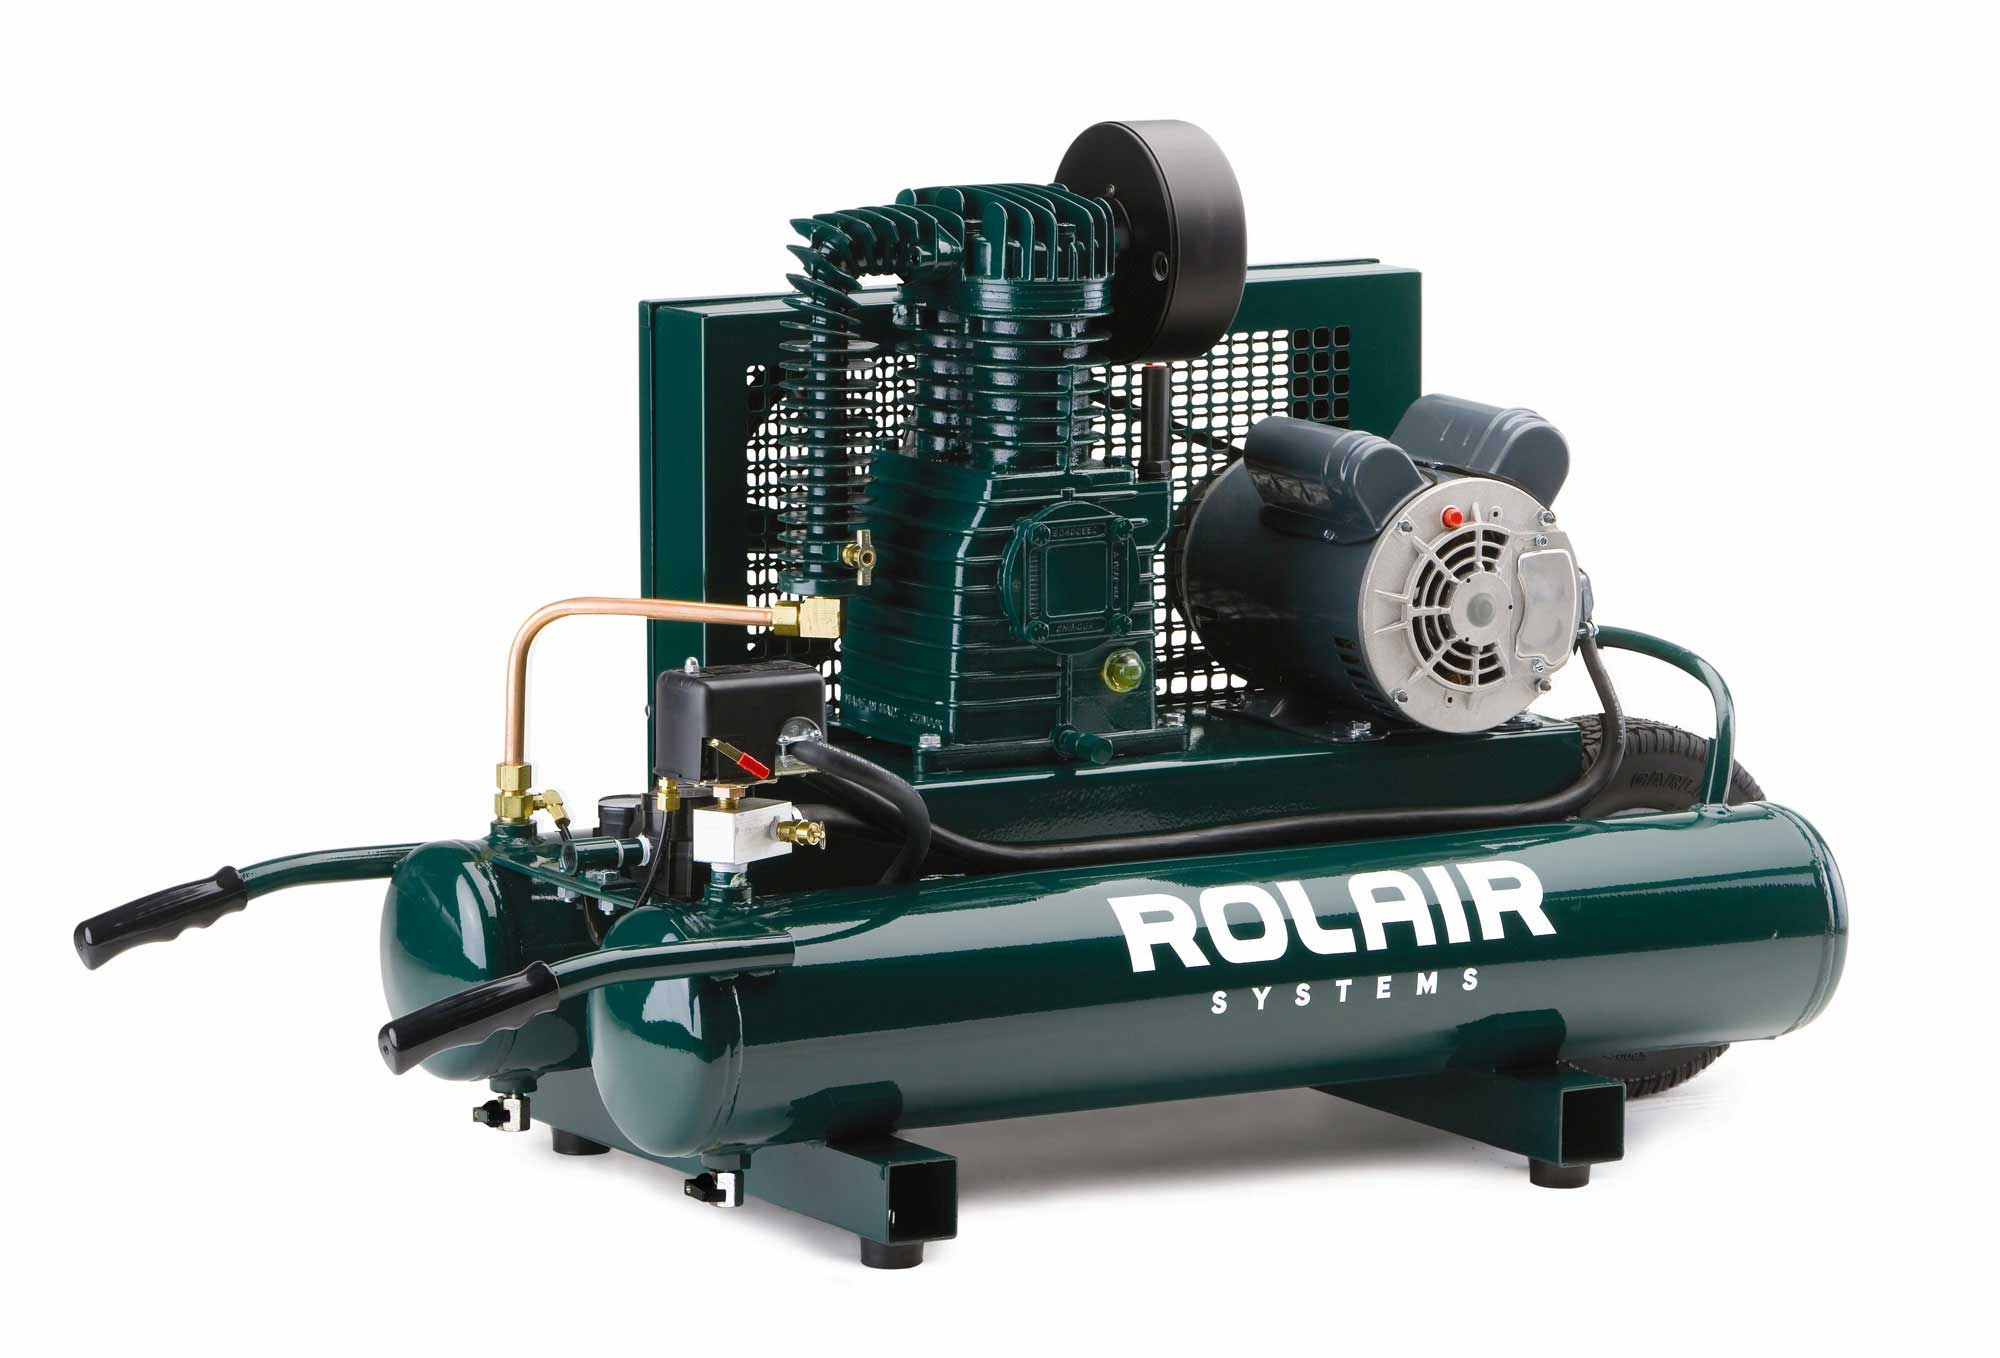 Rolair 2 HP 9 Gallon Electric Air Compressor 6820K17D